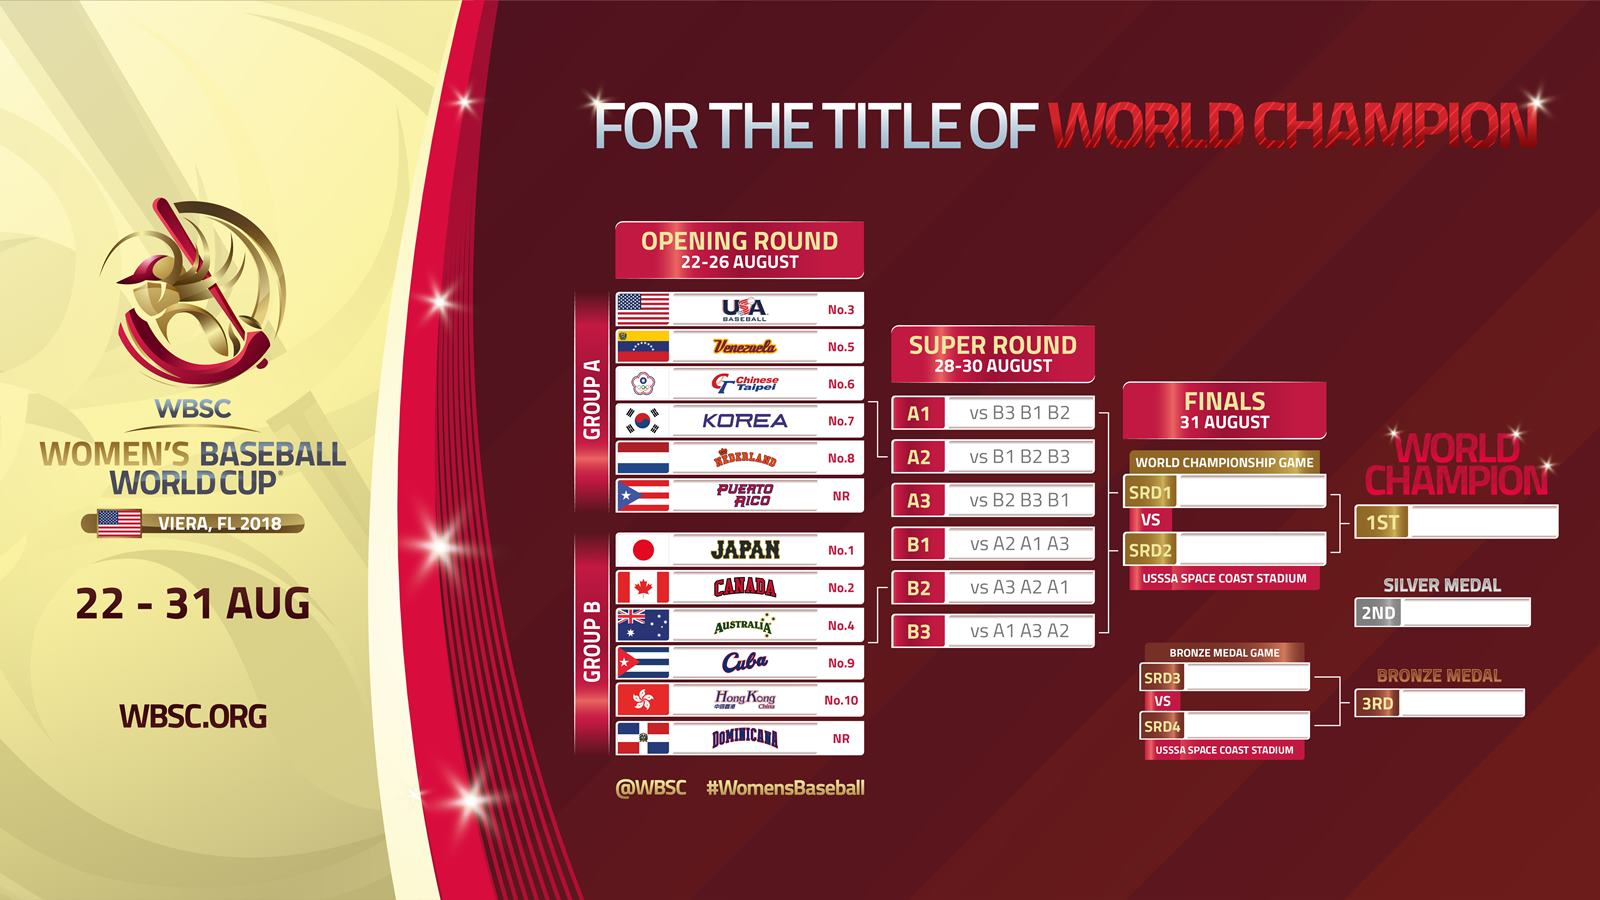 Watch all WBSC Women's Baseball World Cup games this August!